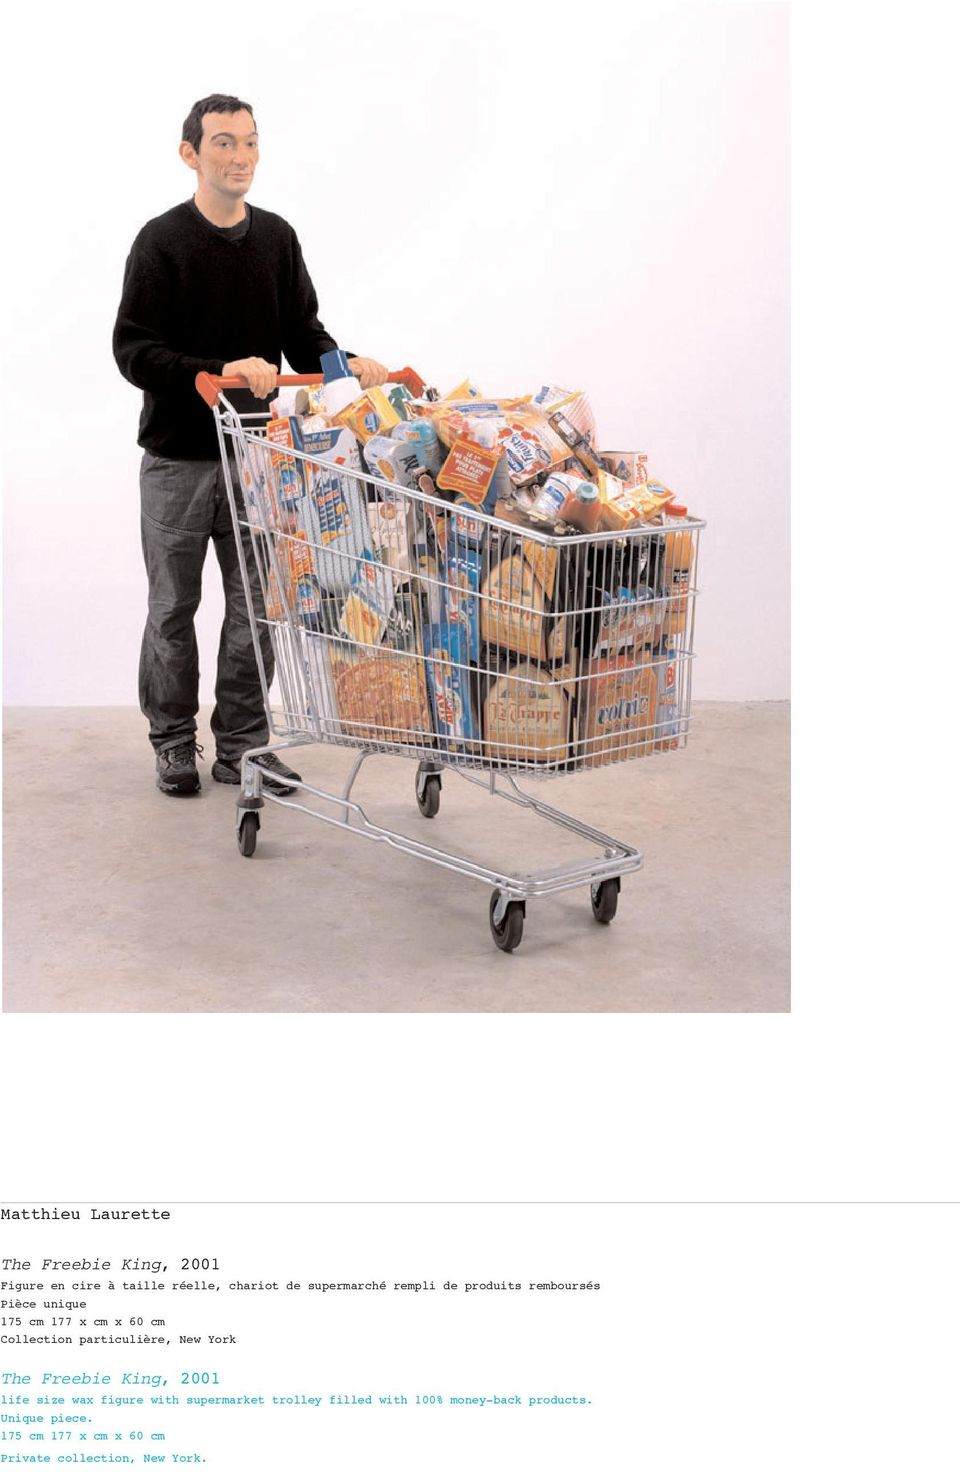 York The Freebie King, 2001 life size wax figure with supermarket trolley filled with